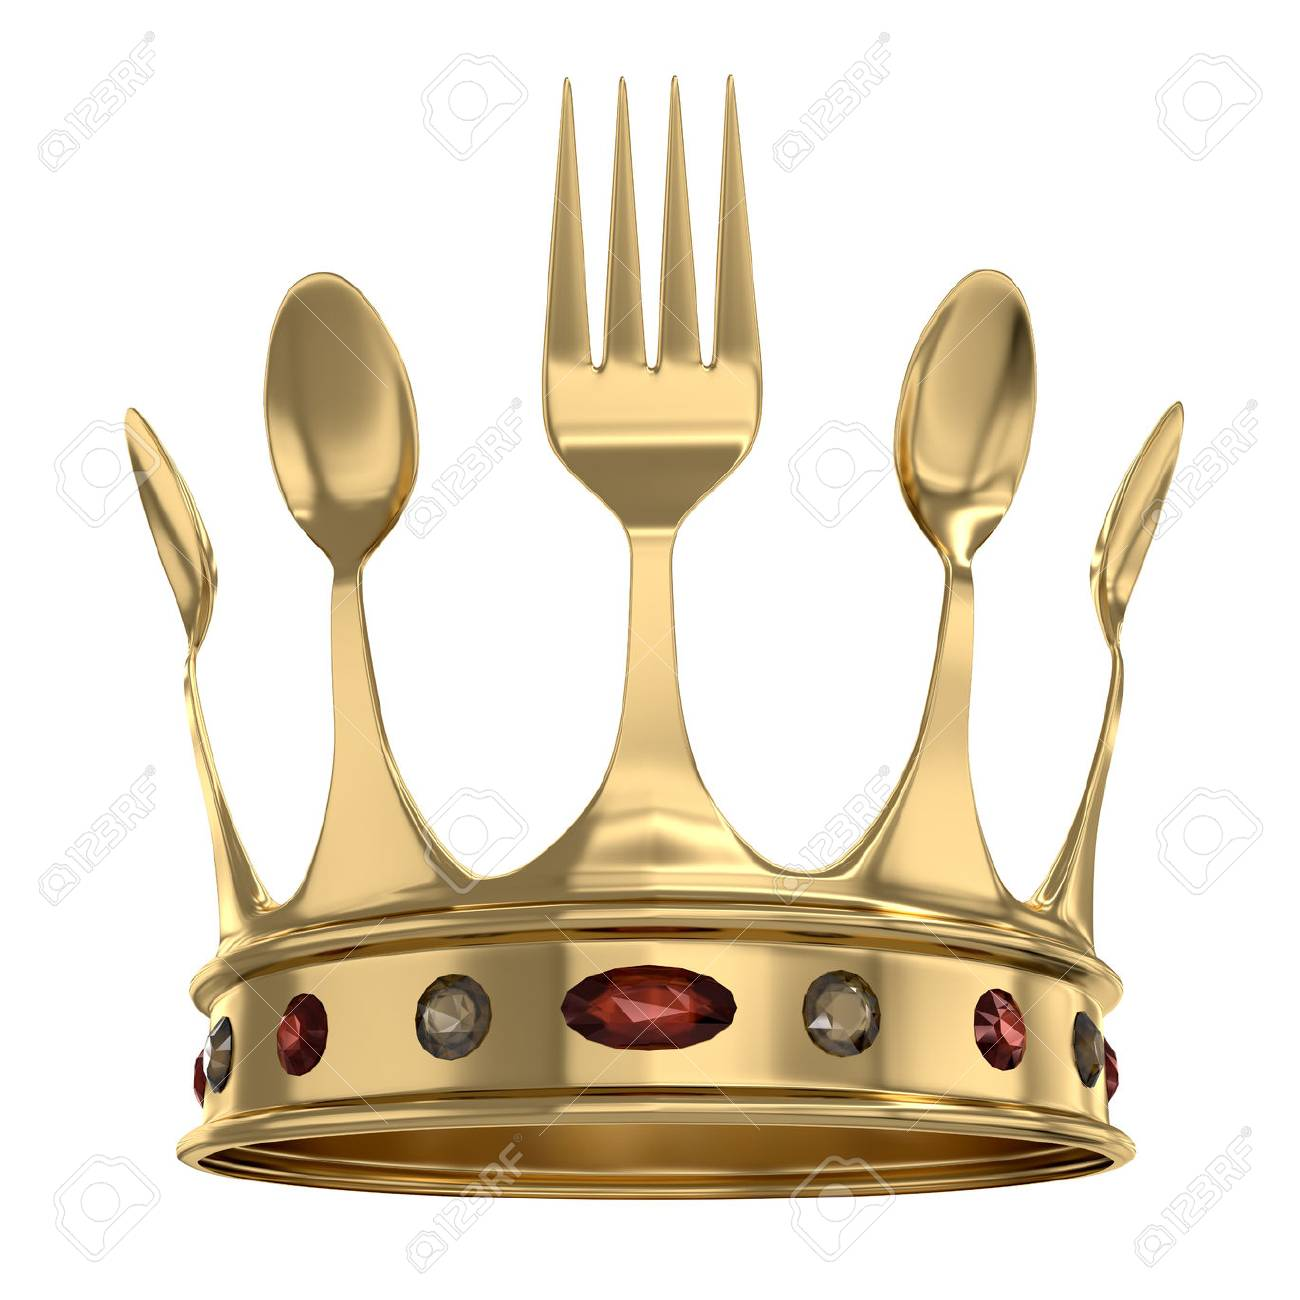 King Of The Kitchen Stock Photo Picture And Royalty Free Image Image 31489963